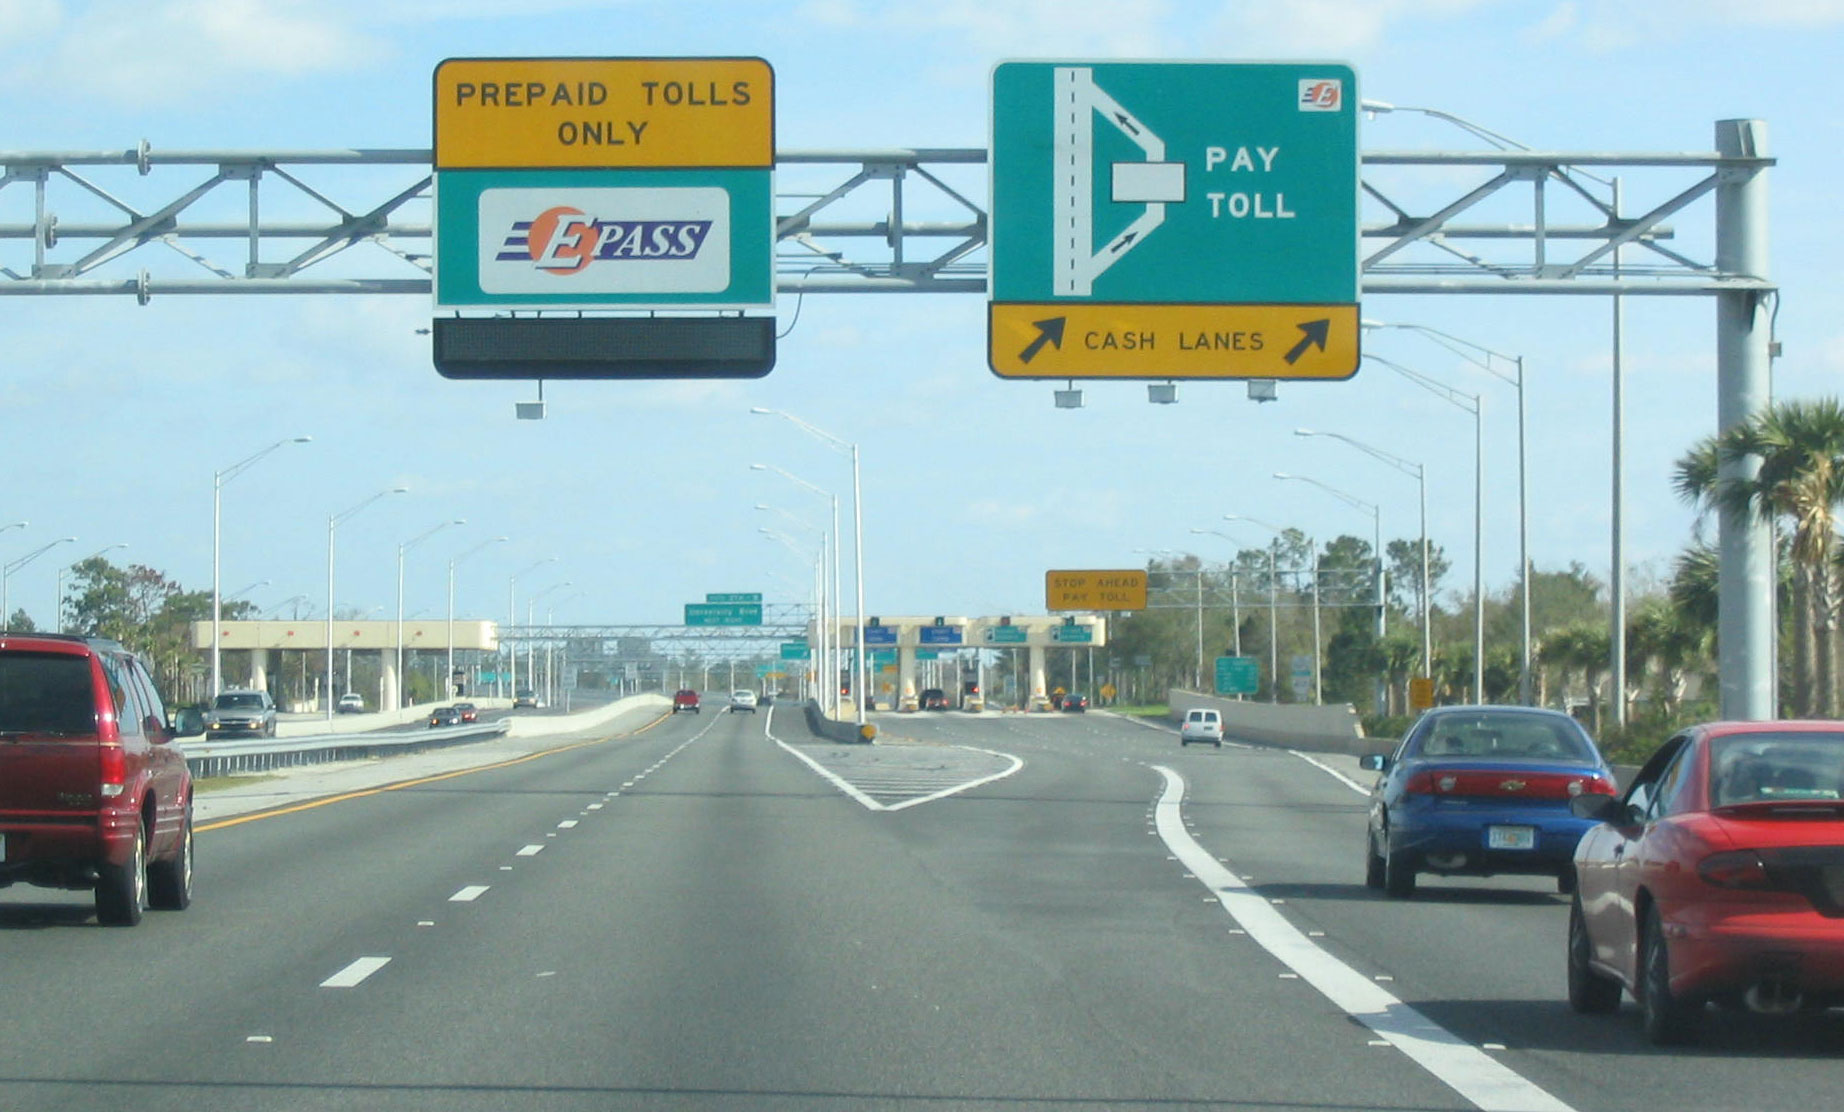 Carry cash for tolls